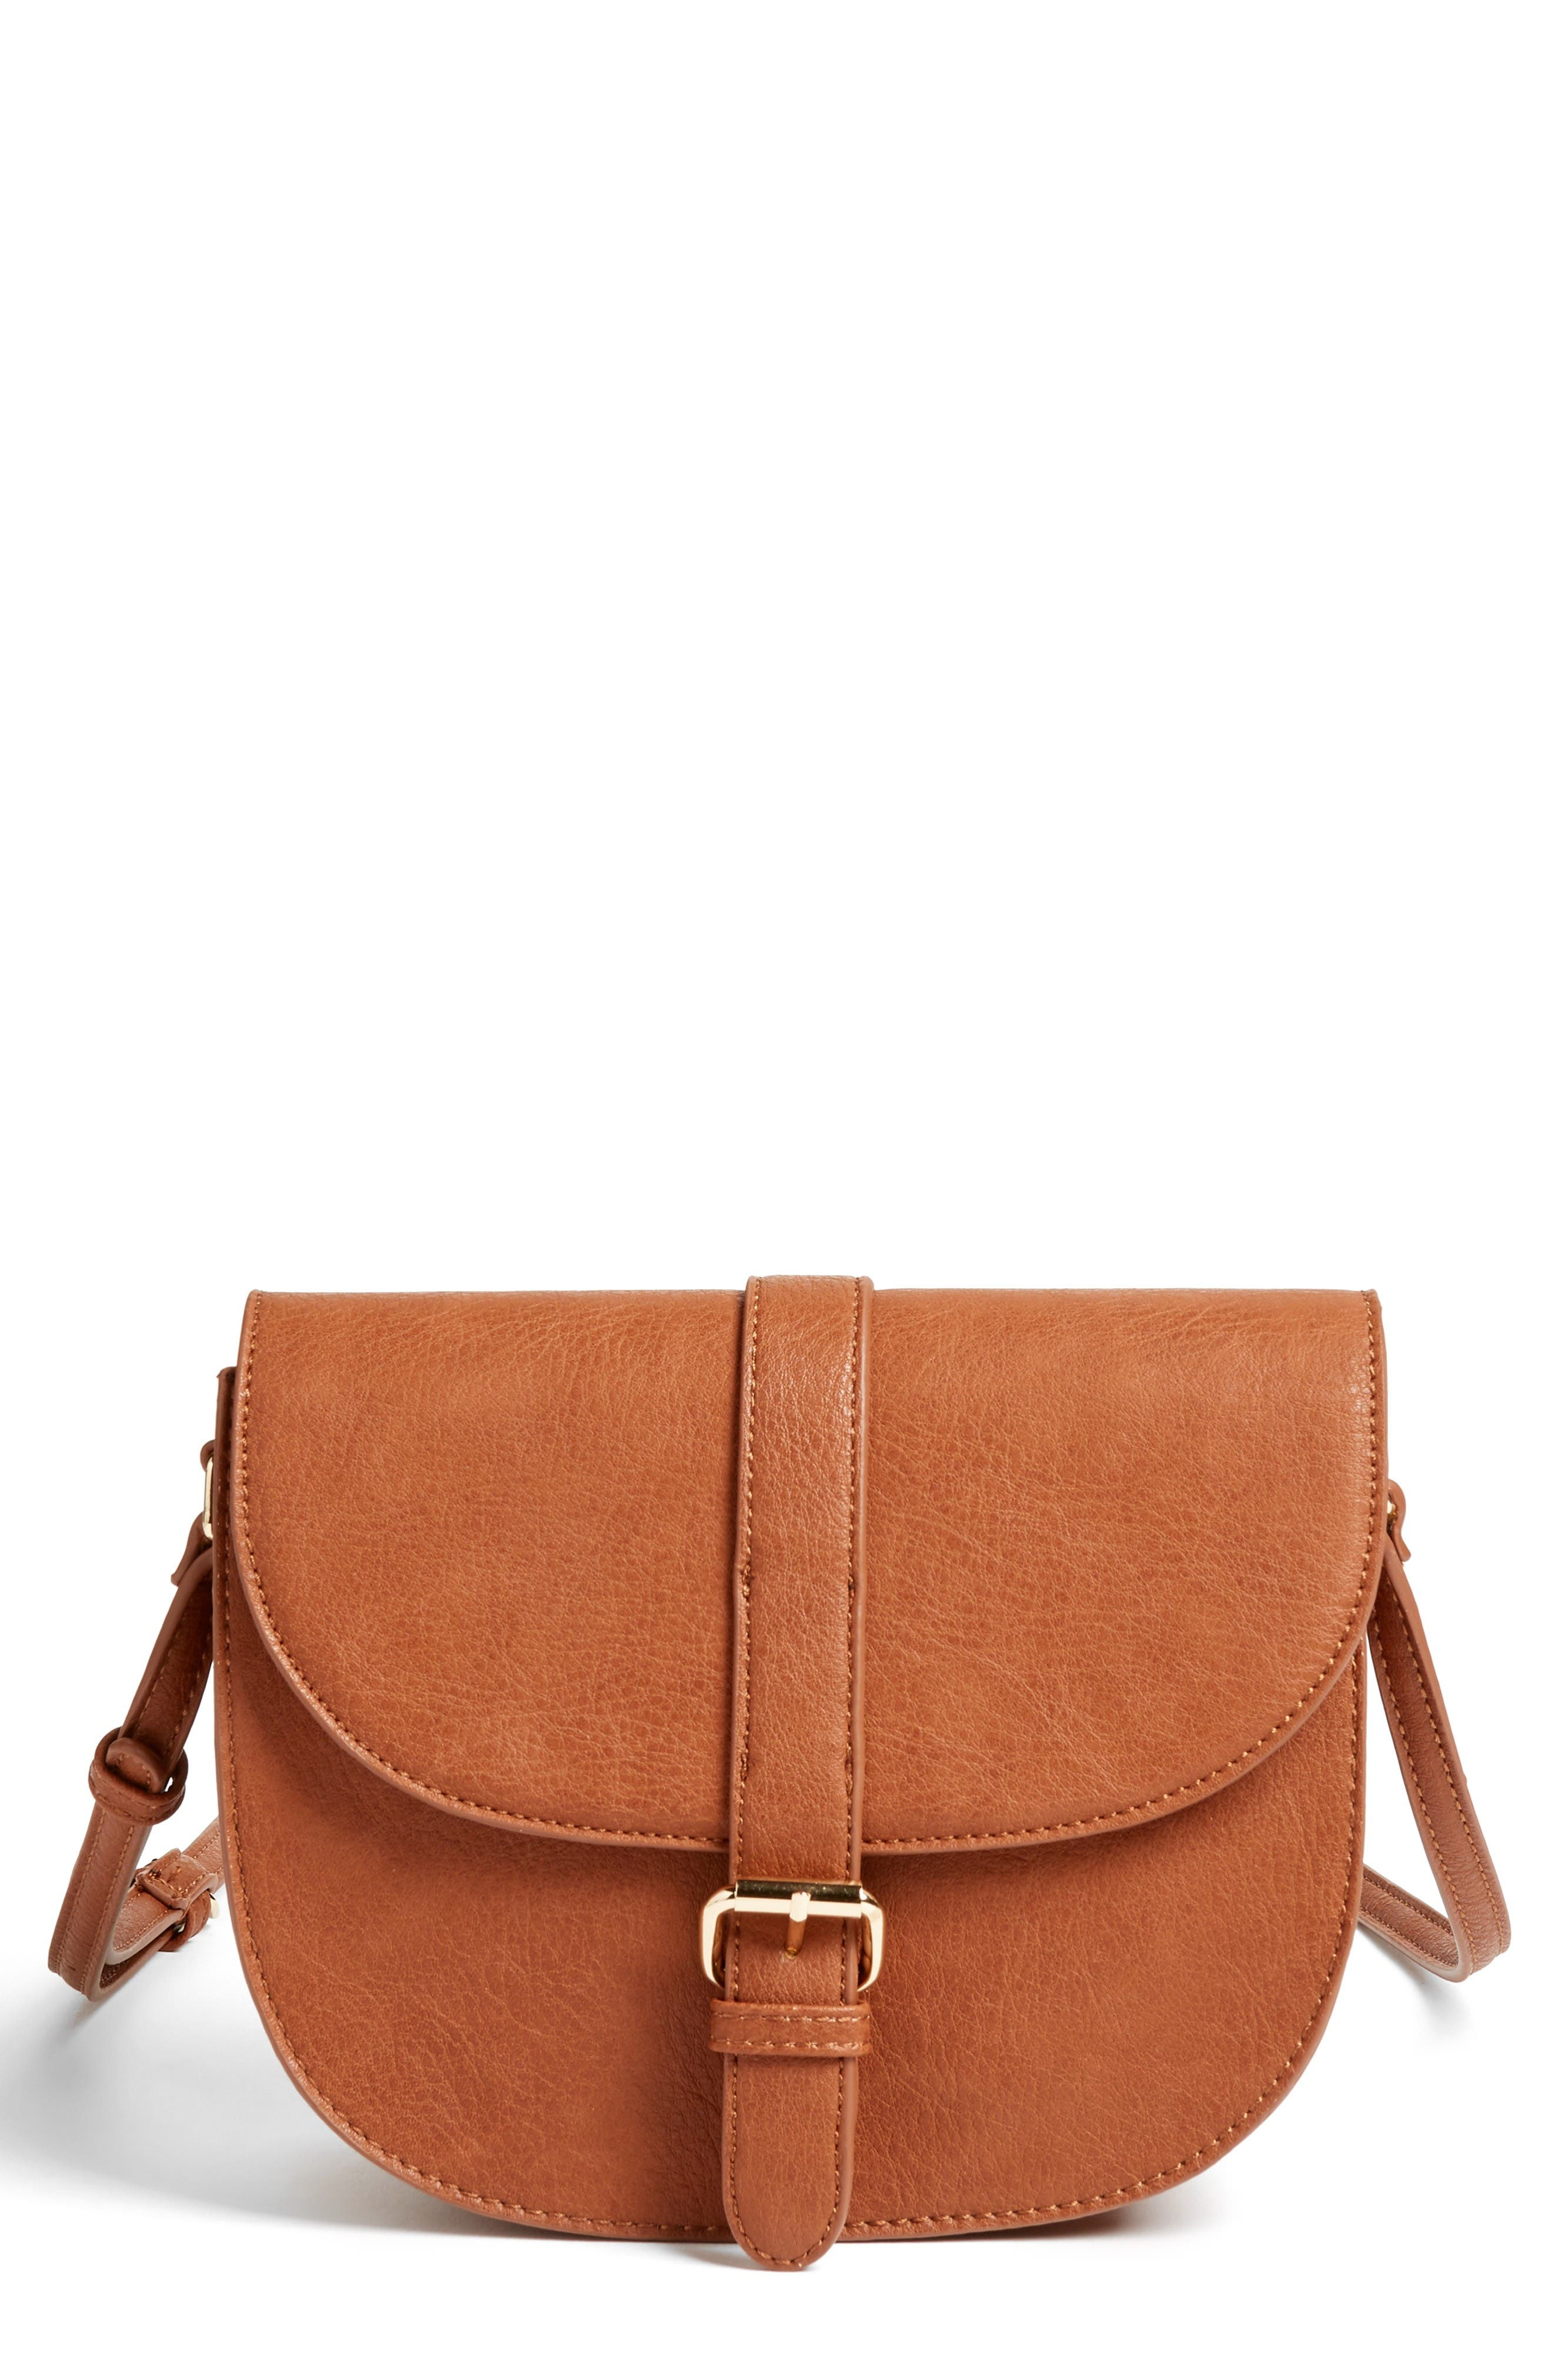 Main Image - Emperia Faux Leather Saddle Bag (Special Purchase)